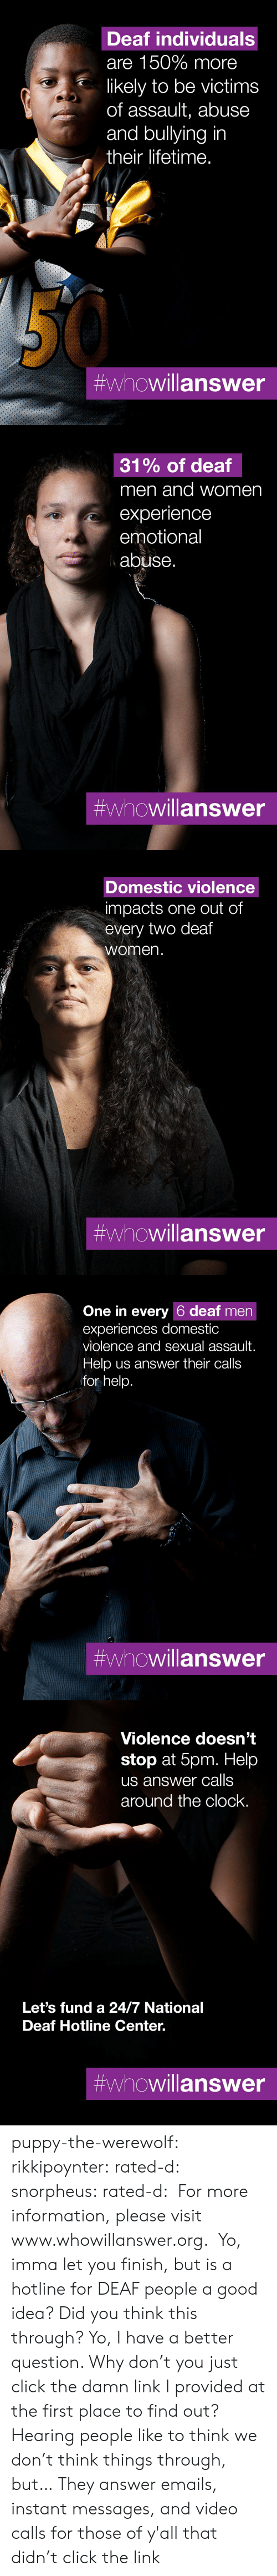 Fund: Deaf individuals  are 150% more  likely to be victims  of assault, abuse  and bullying in  their lifetime.  #whowillanswer   31% of deaf  men and women  experience  emotional  abuse.  #whowillanswer   Domestic violence  impacts one out of  every two deaf  women.  #whowillanswer   One in every 6 deaf men  experiences domestic  violence and sexual assault.  Help us answer their calls  for help.  #whowillanswer   Violence doesn't  stop at 5pm. Help  us answer calls  around the clock.  Let's fund a 24/7 National  Deaf Hotline Center.  puppy-the-werewolf: rikkipoynter:  rated-d:  snorpheus:  rated-d:   For more information, please visit www.whowillanswer.org.   Yo, imma let you finish, but is a hotline for DEAF people a good idea? Did you think this through?  Yo, I have a better question. Why don't you just click the damn link I provided at the first place to find out?     Hearing people like to think we don't think things through, but…   They answer emails, instant messages, and video calls for those of y'all that didn't click the link